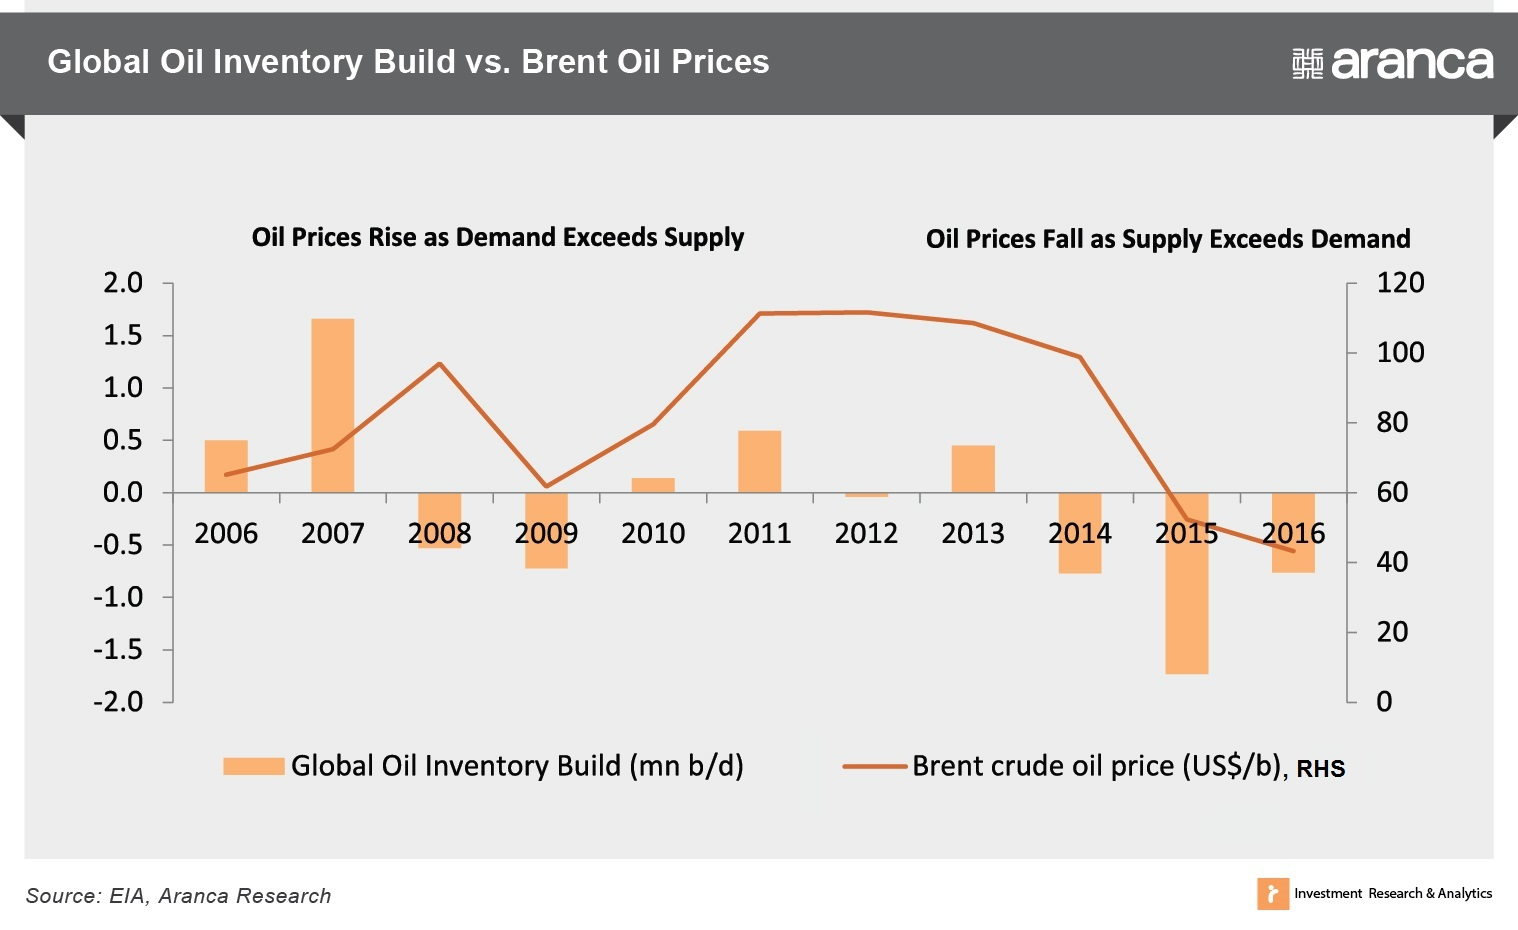 Global Oil Inventory Build vs. Brent Oil Prices